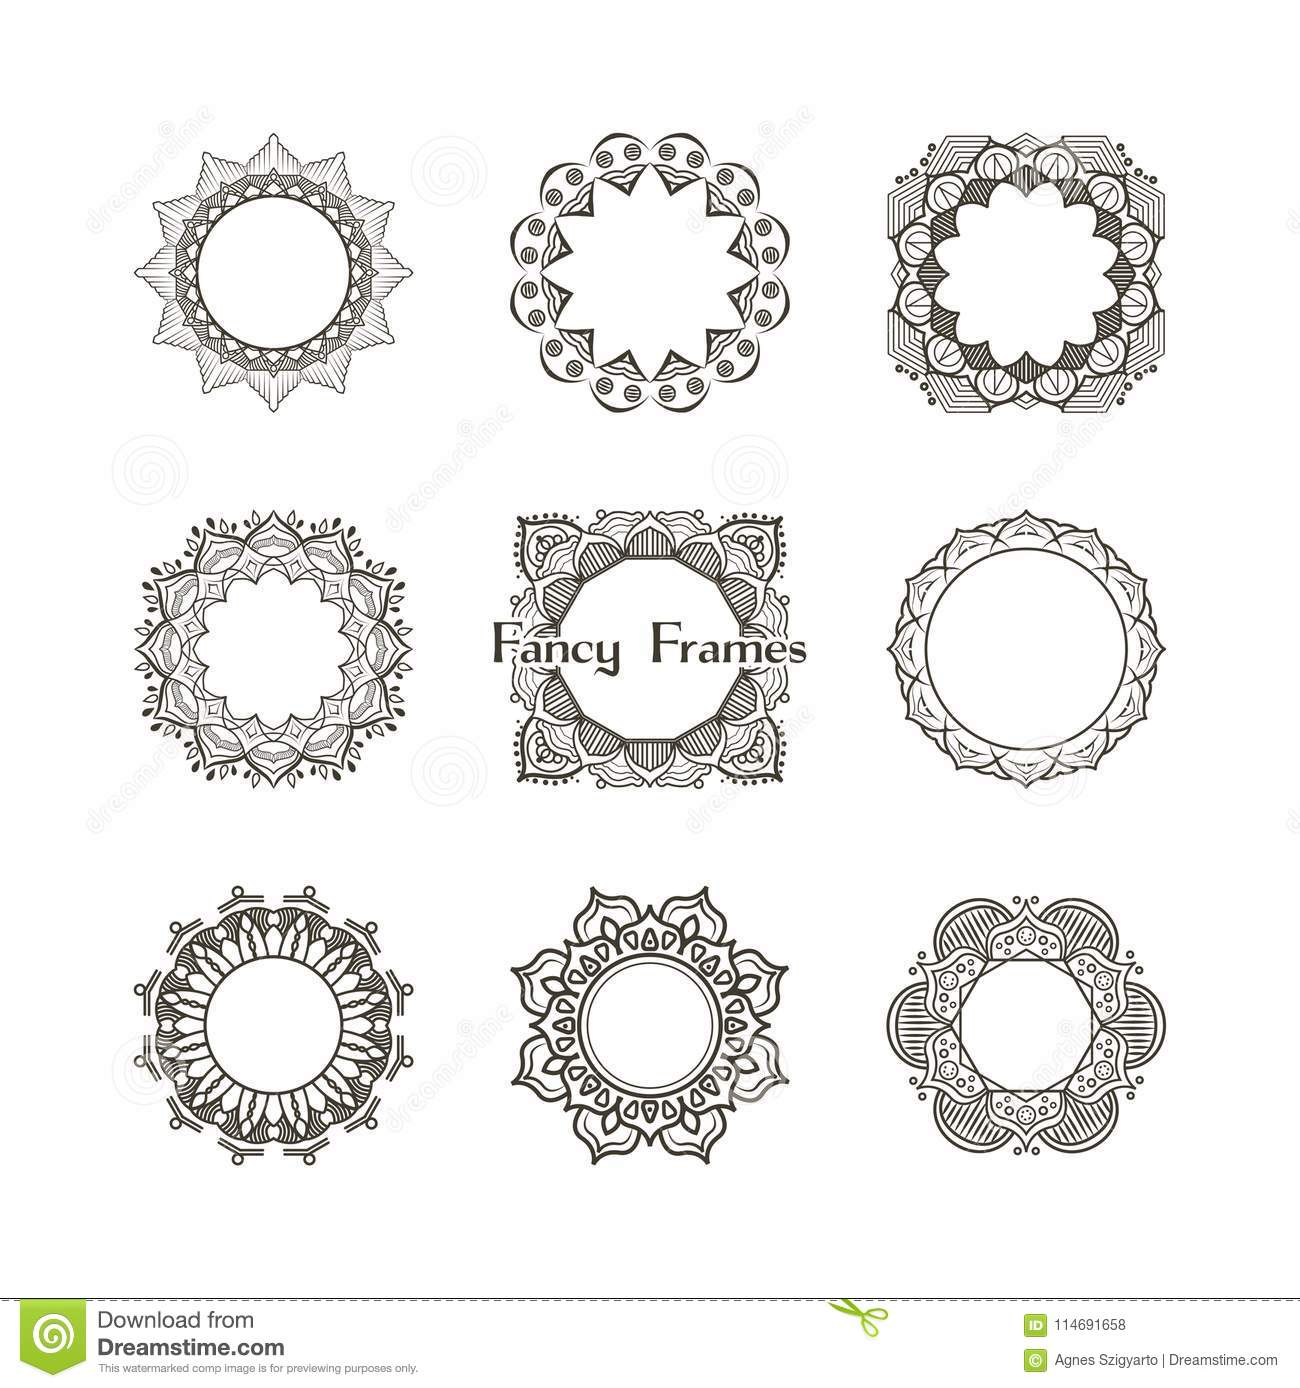 Fancy frames collection stock vector. Illustration of ethnic - 114691658